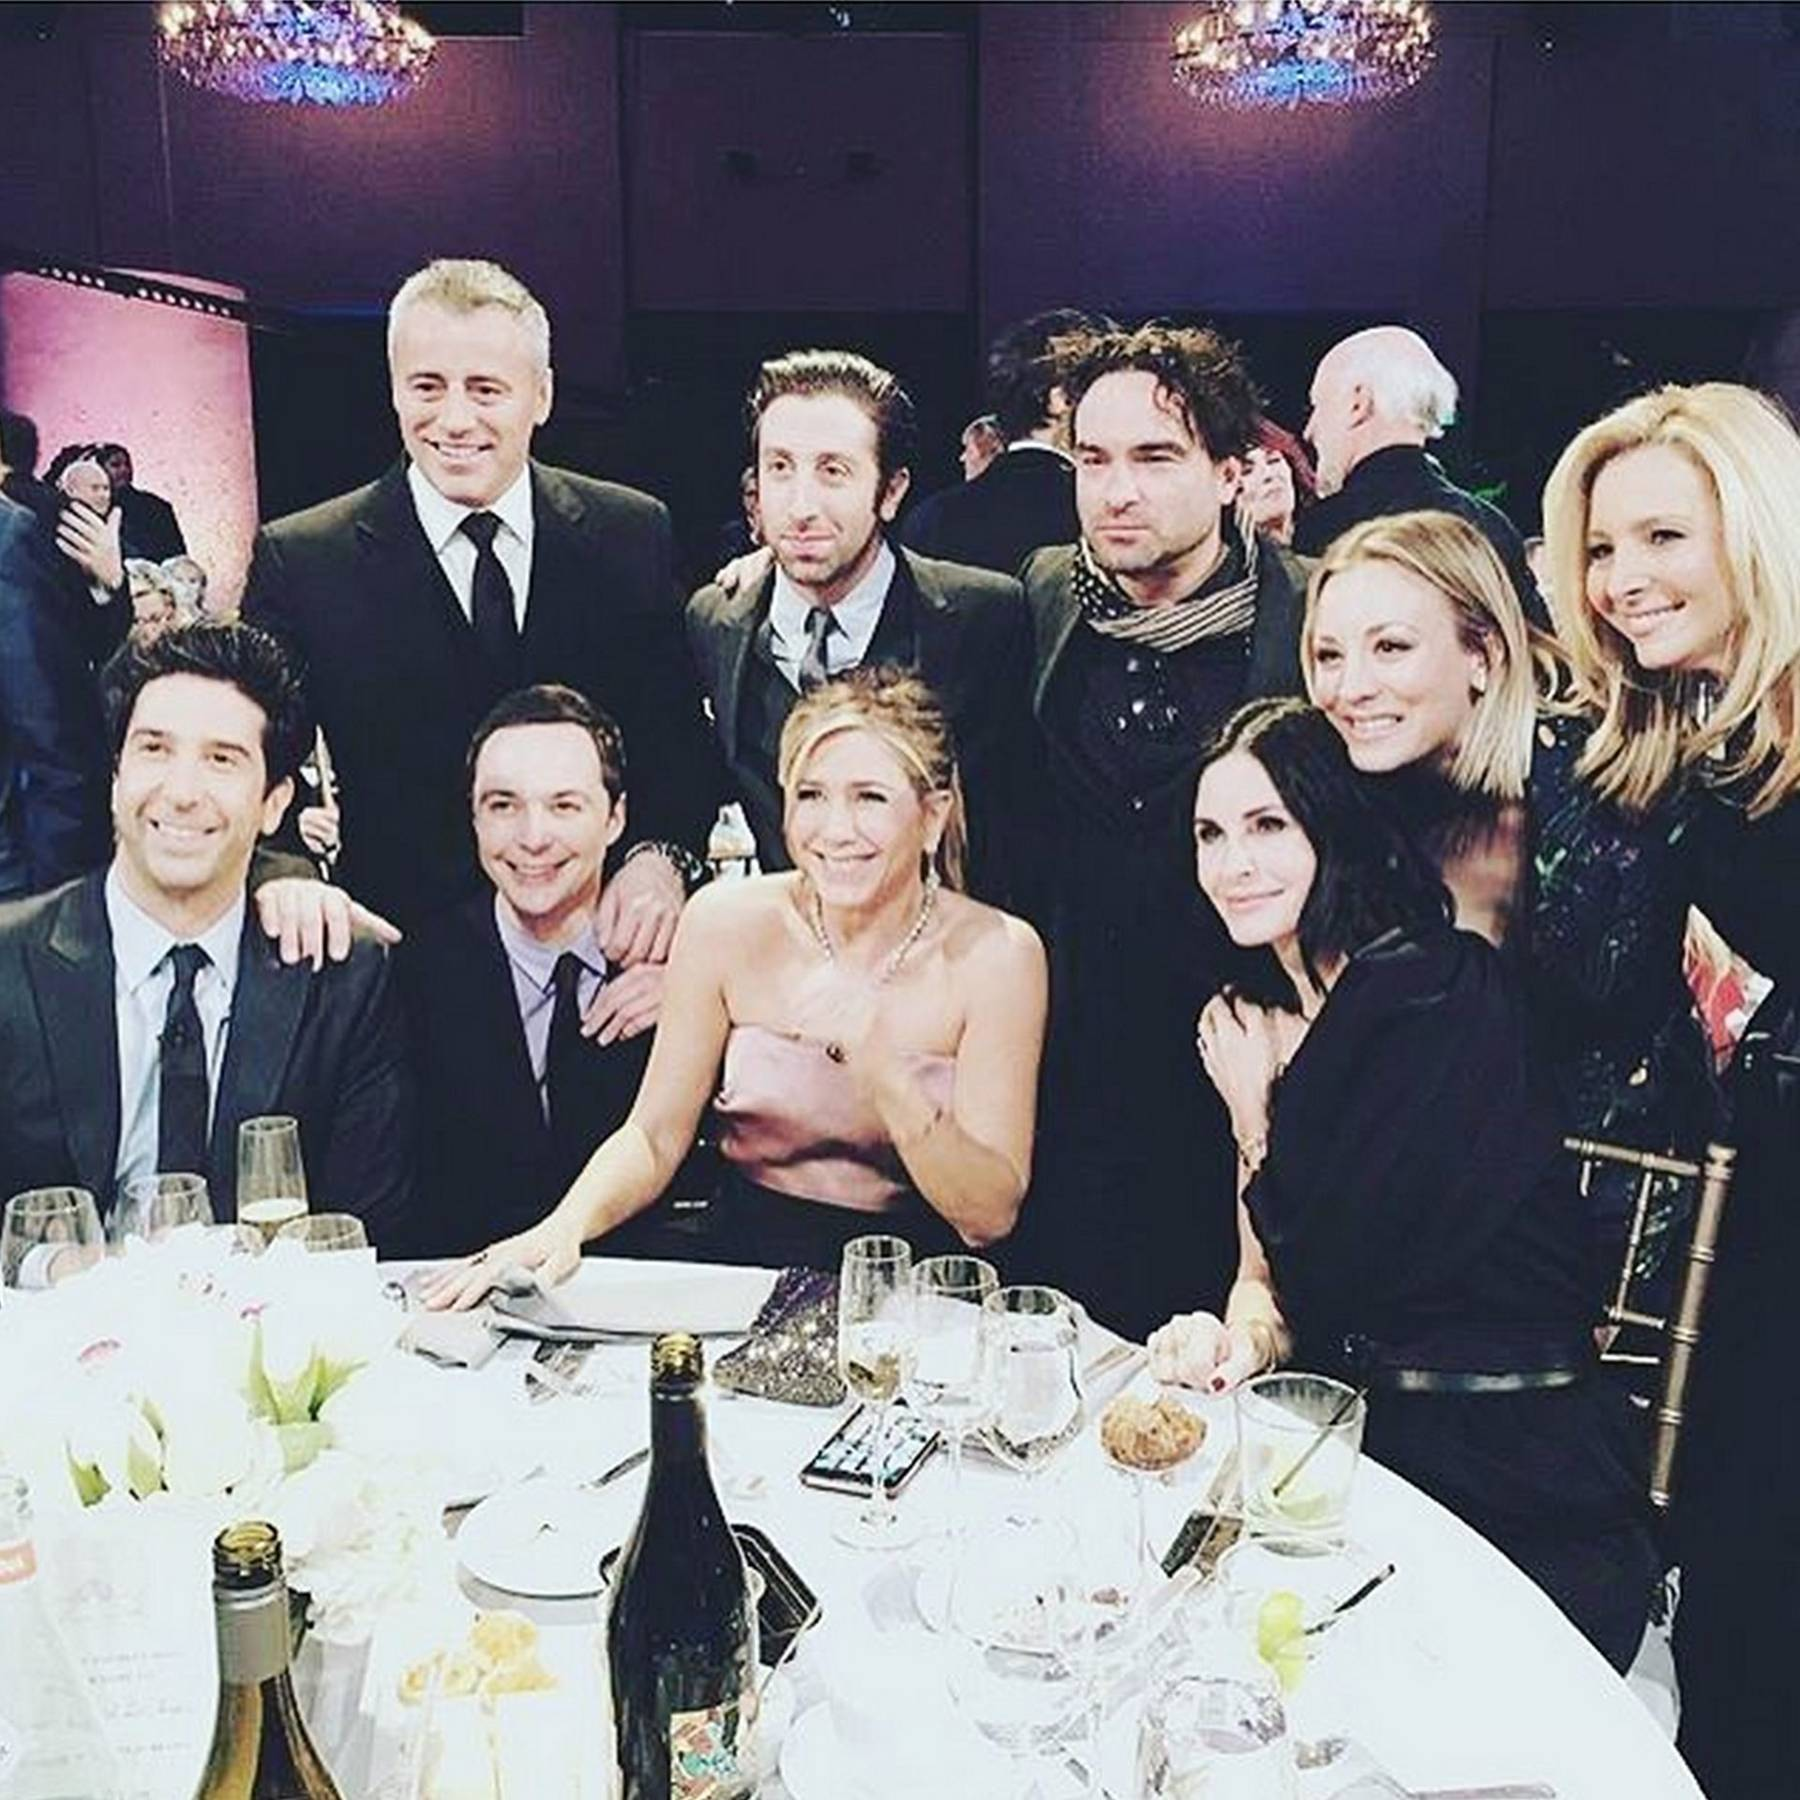 Friends Reunion News - Matt LeBlanc, Matthew Perry, Jennifer